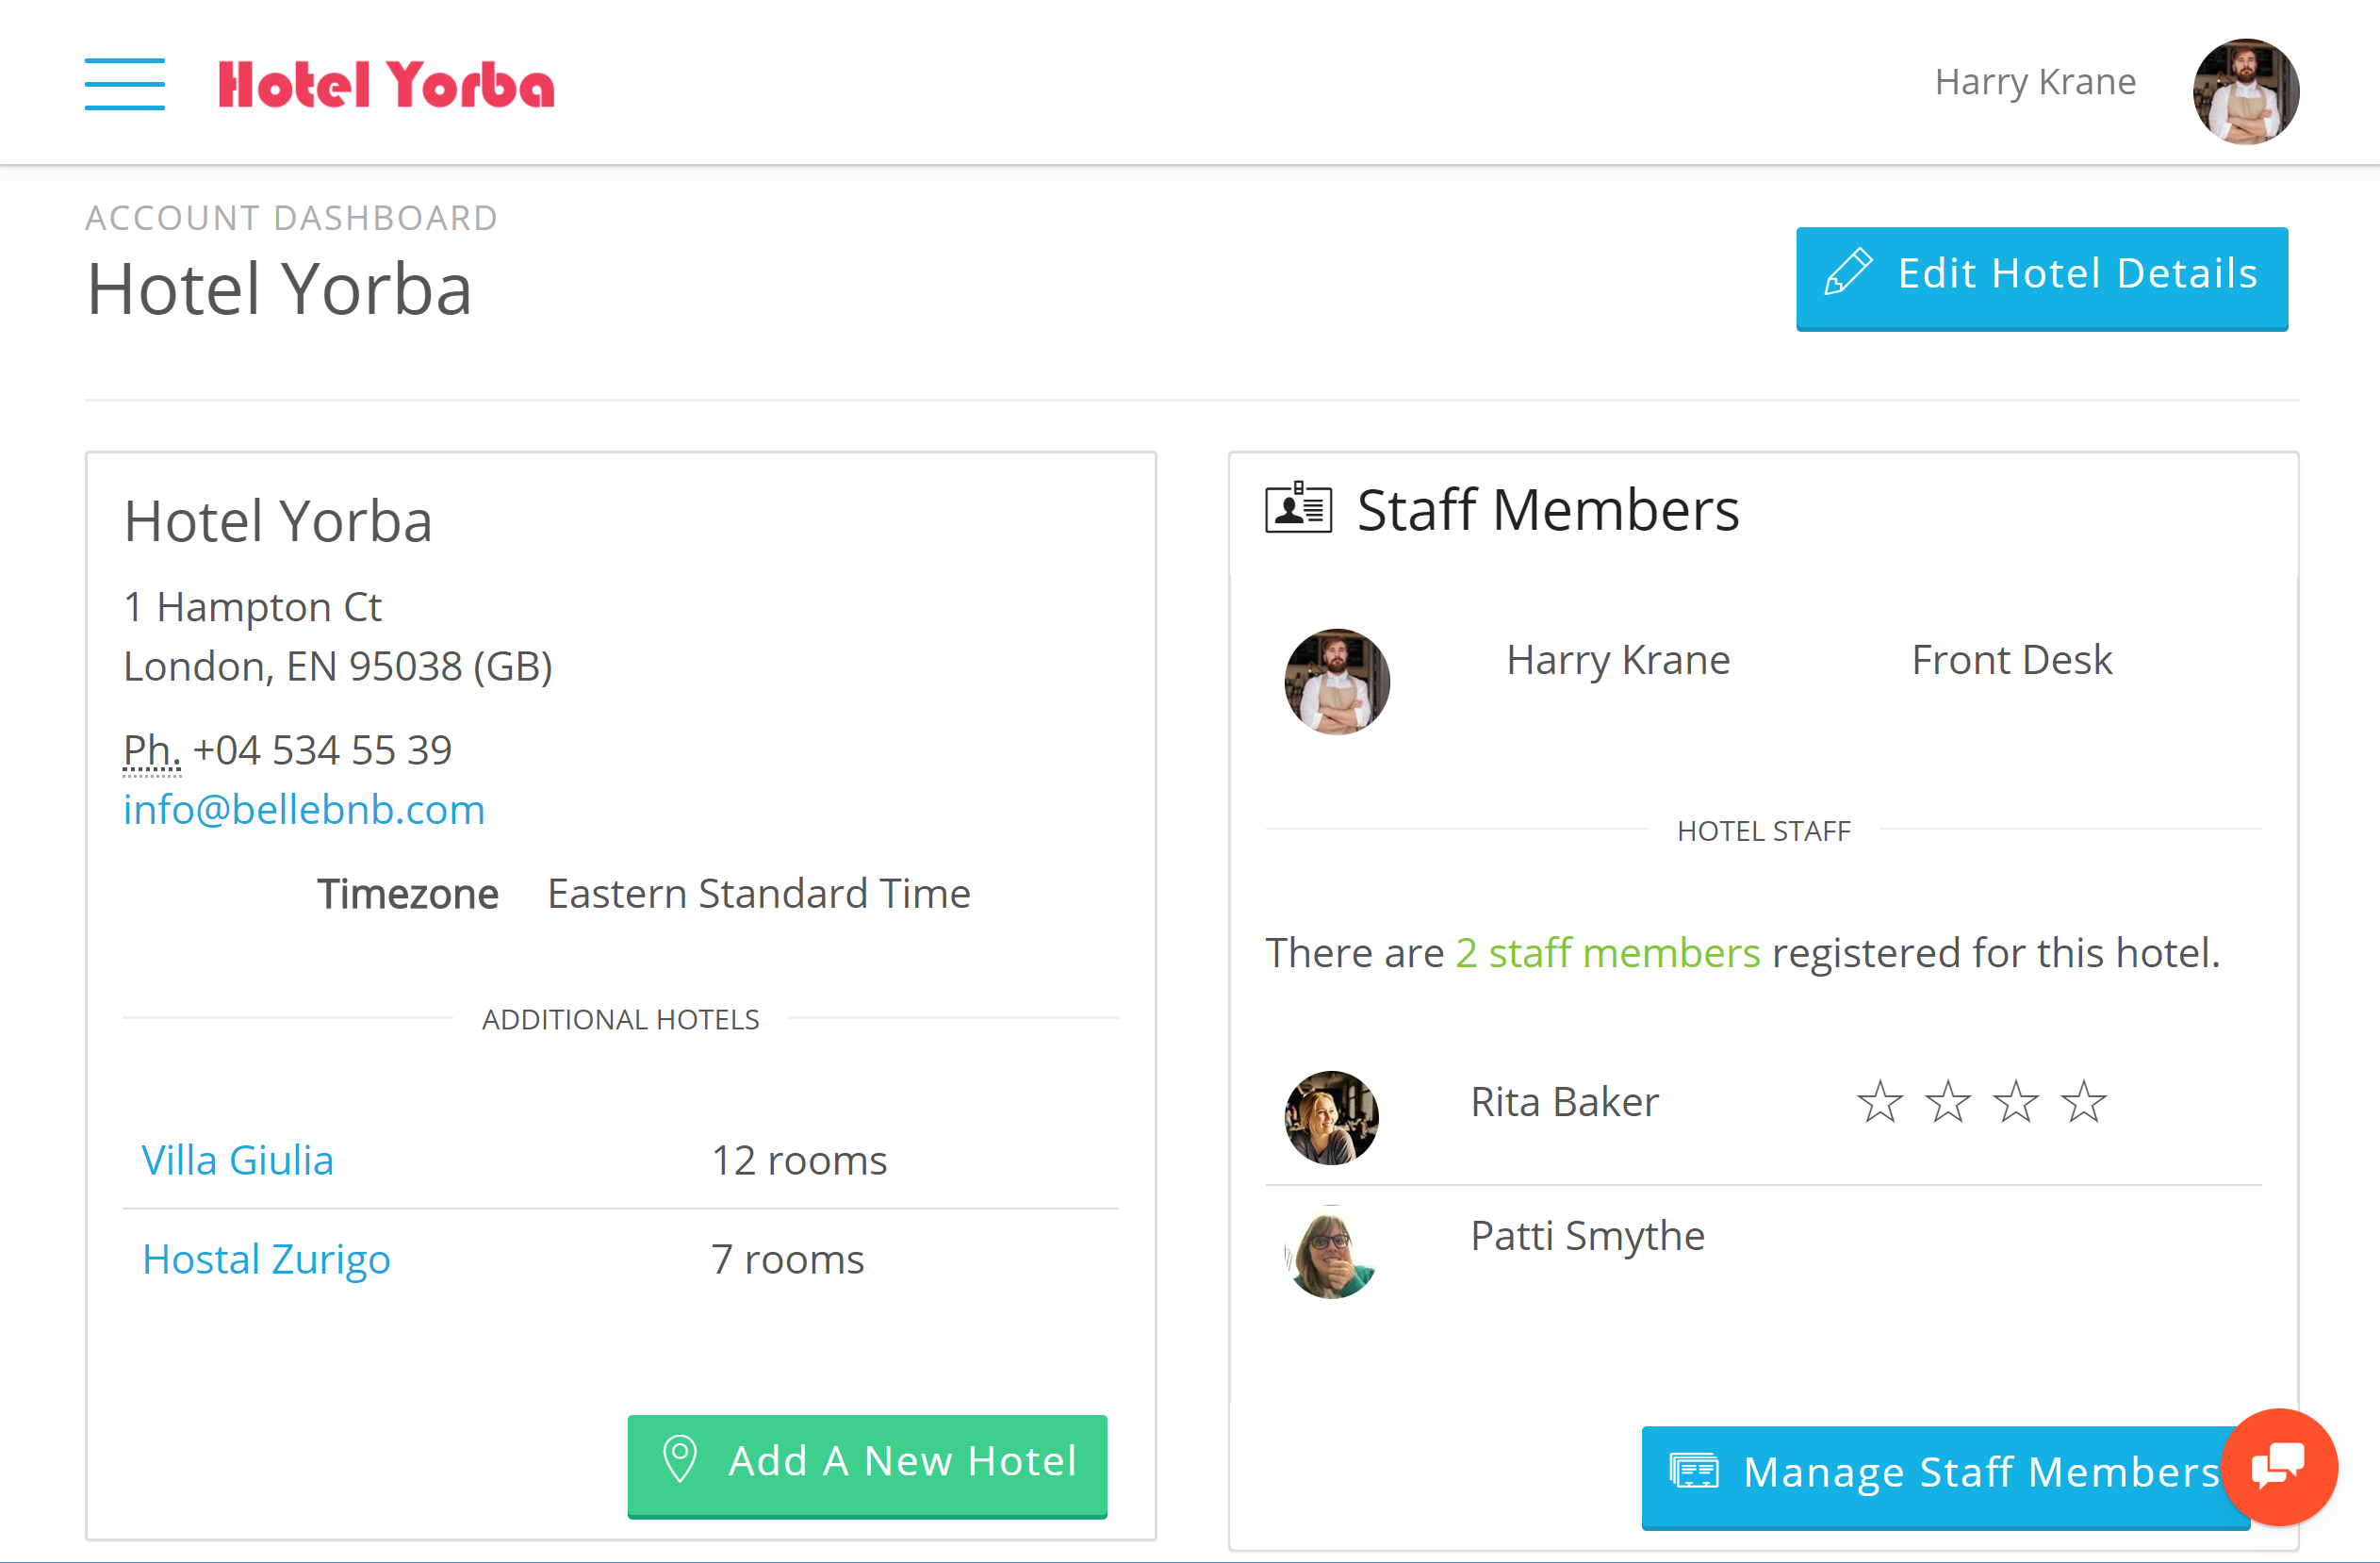 Group Hotel Management Software in the Cloud Bellebnb platform to accommodate hotel chains, groups, and agencies